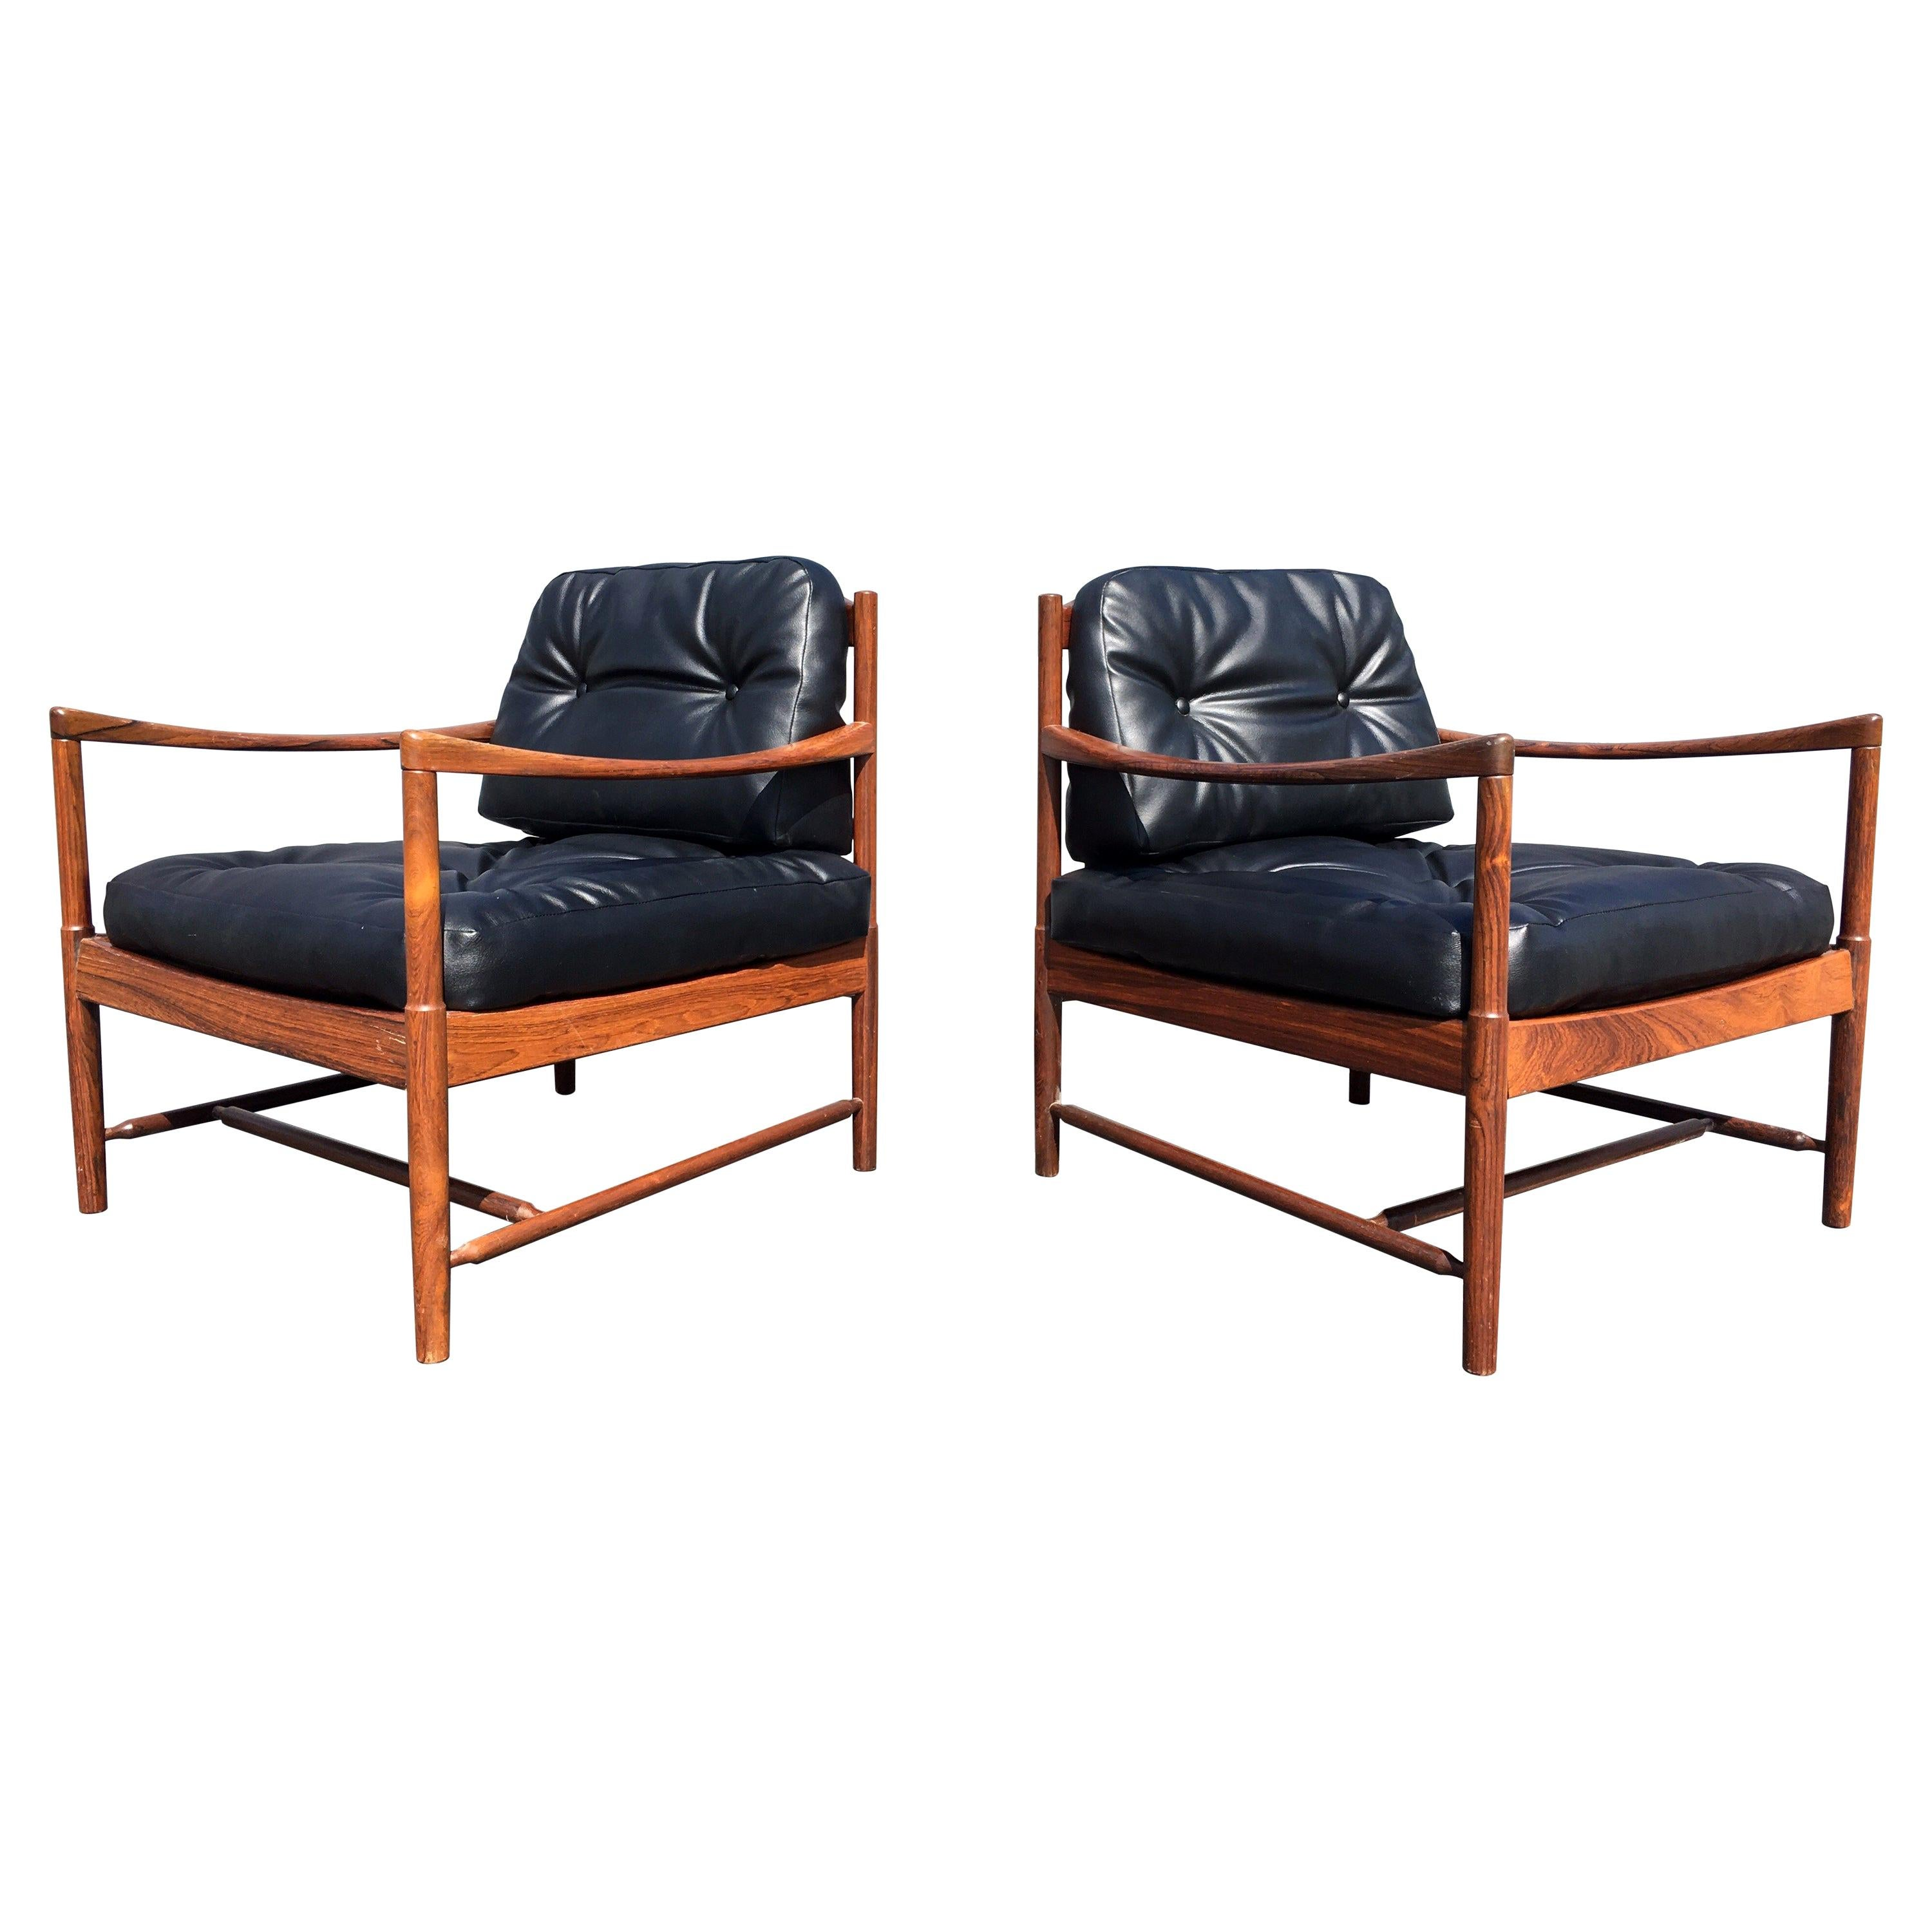 Pair of Danish Lounge Chairs, Rosewood, Denmark, 1960s